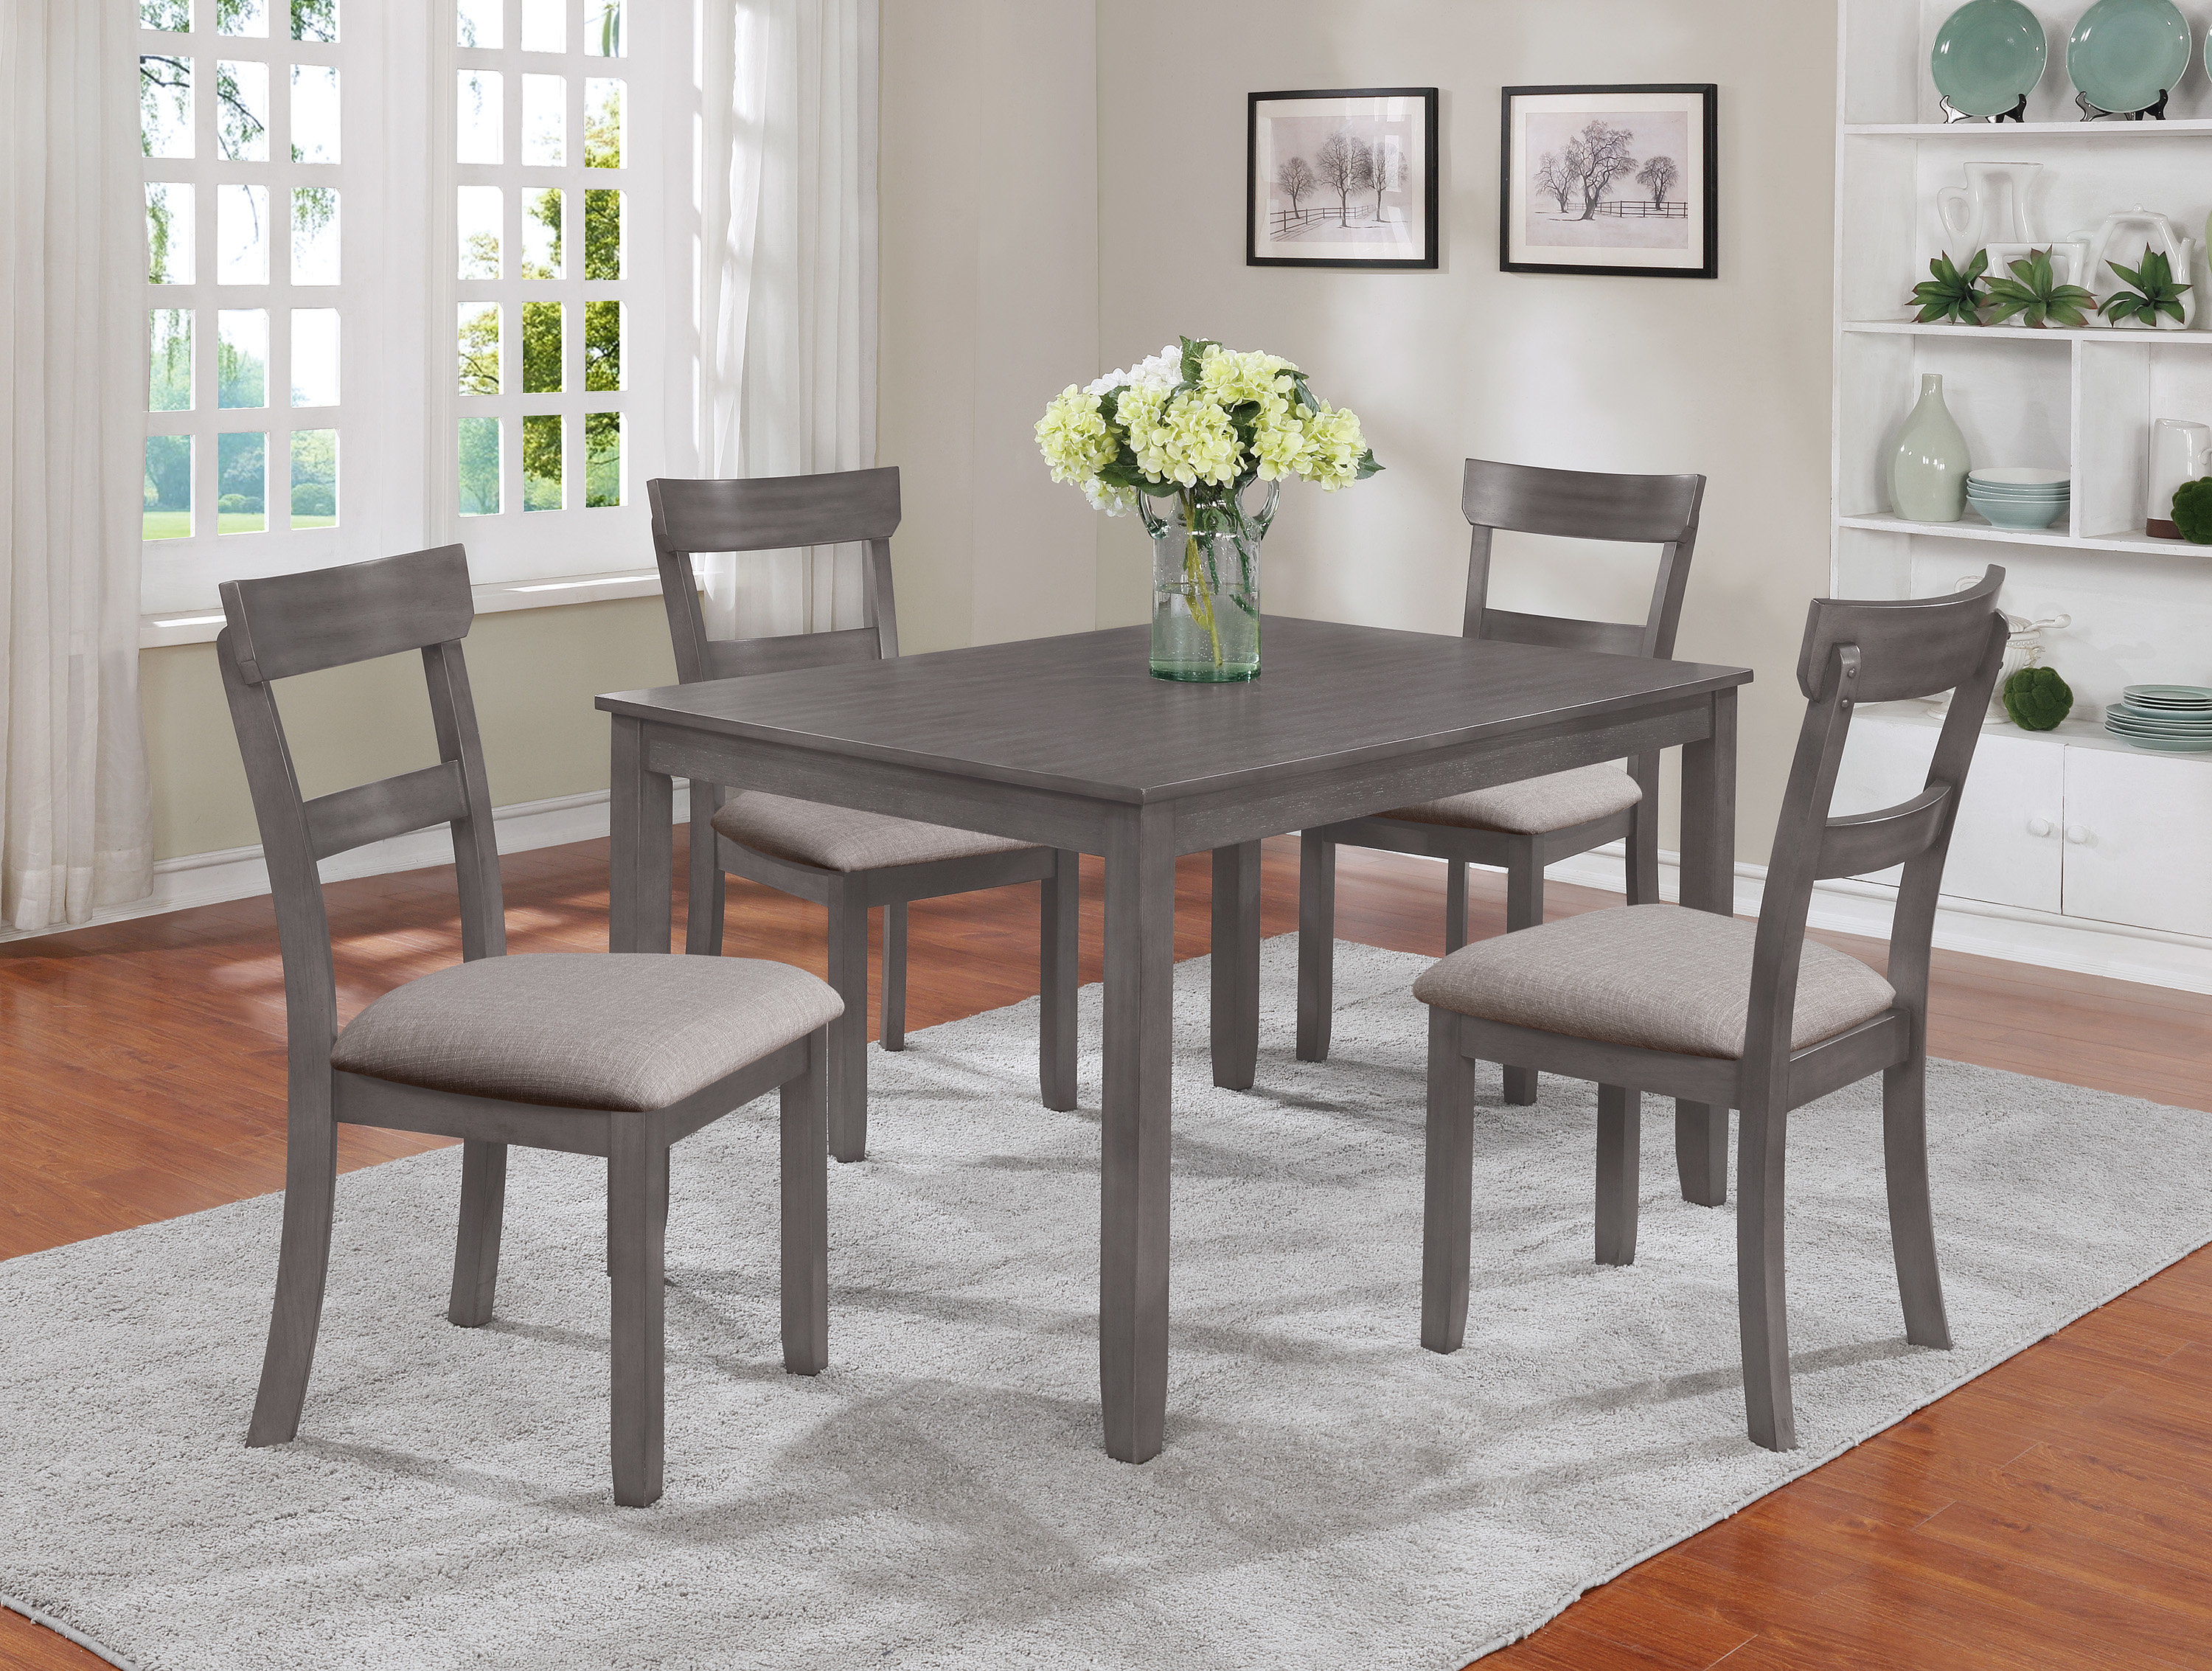 Joss & Main For Favorite Tejeda 5 Piece Dining Sets (View 16 of 25)